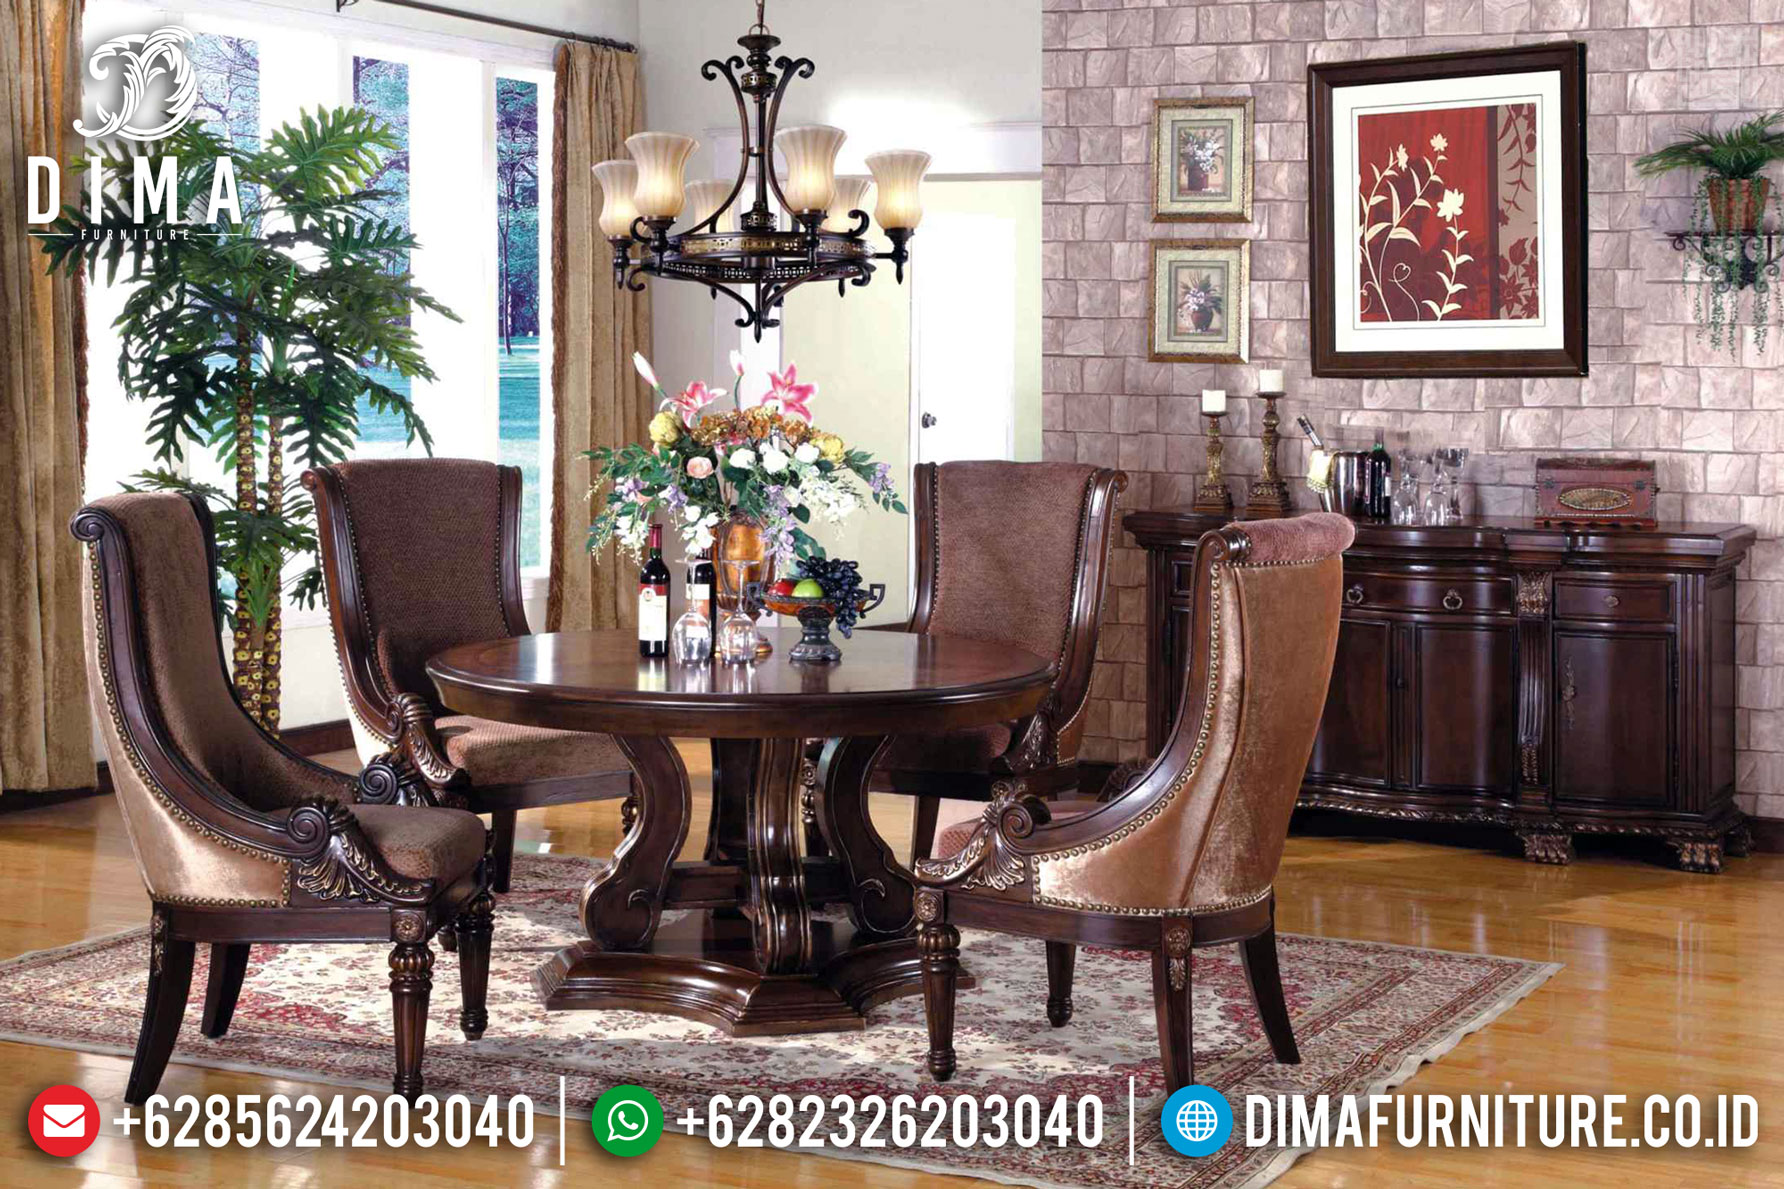 Meja Makan Minimalis Jati Dawson Natural Luxury Classic Furniture Jepara TTJ-1340